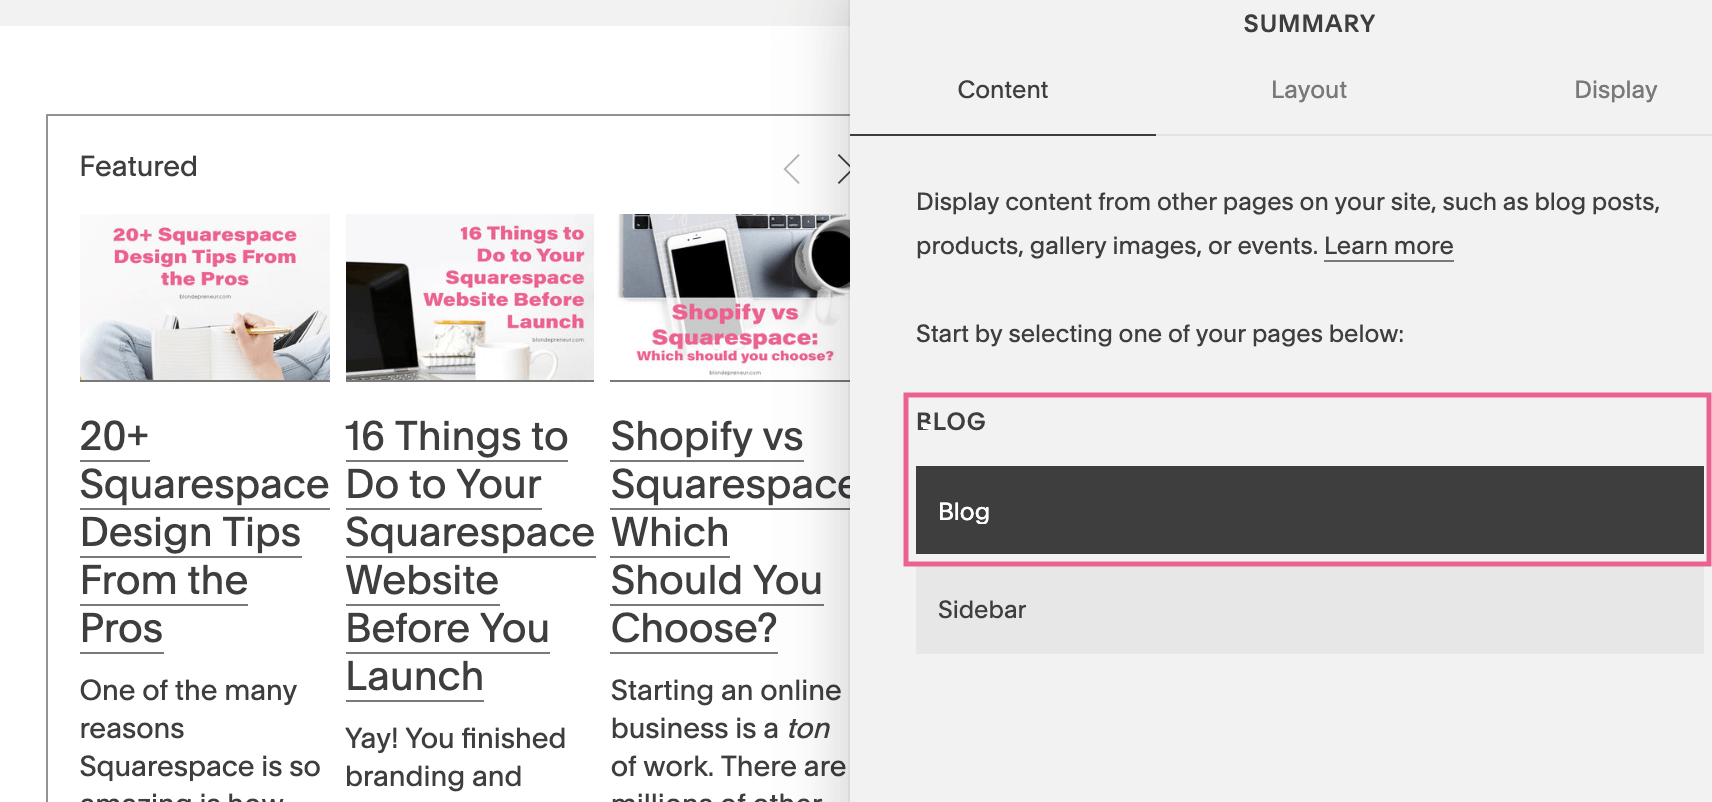 Select your Blog collection in the summary content tab of the Squarespace block editor